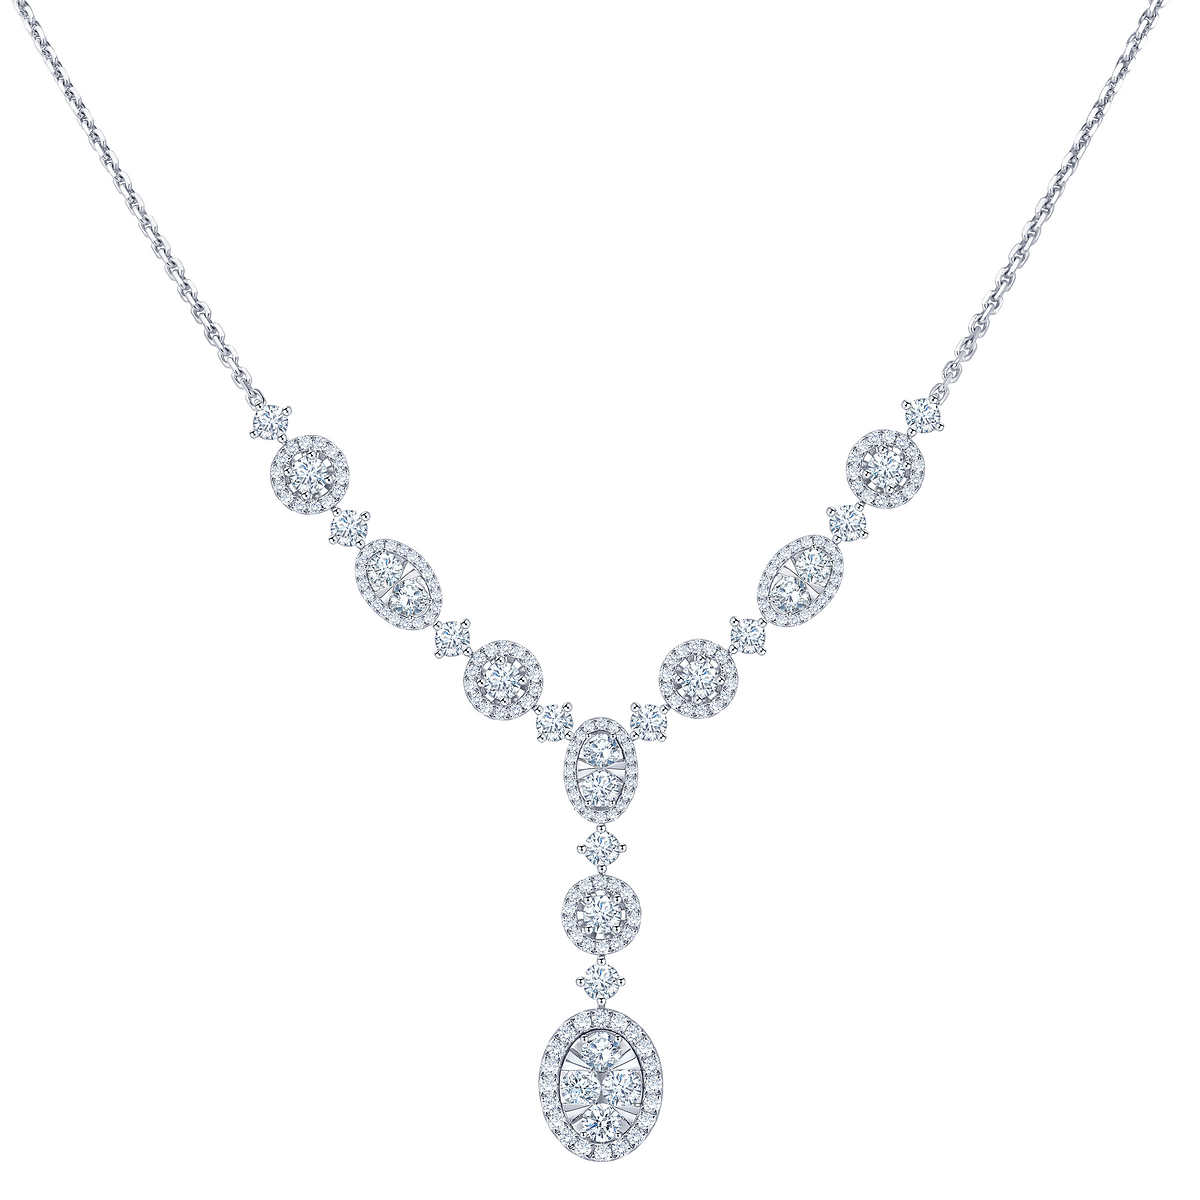 The New Prince of Tennis necklace 2